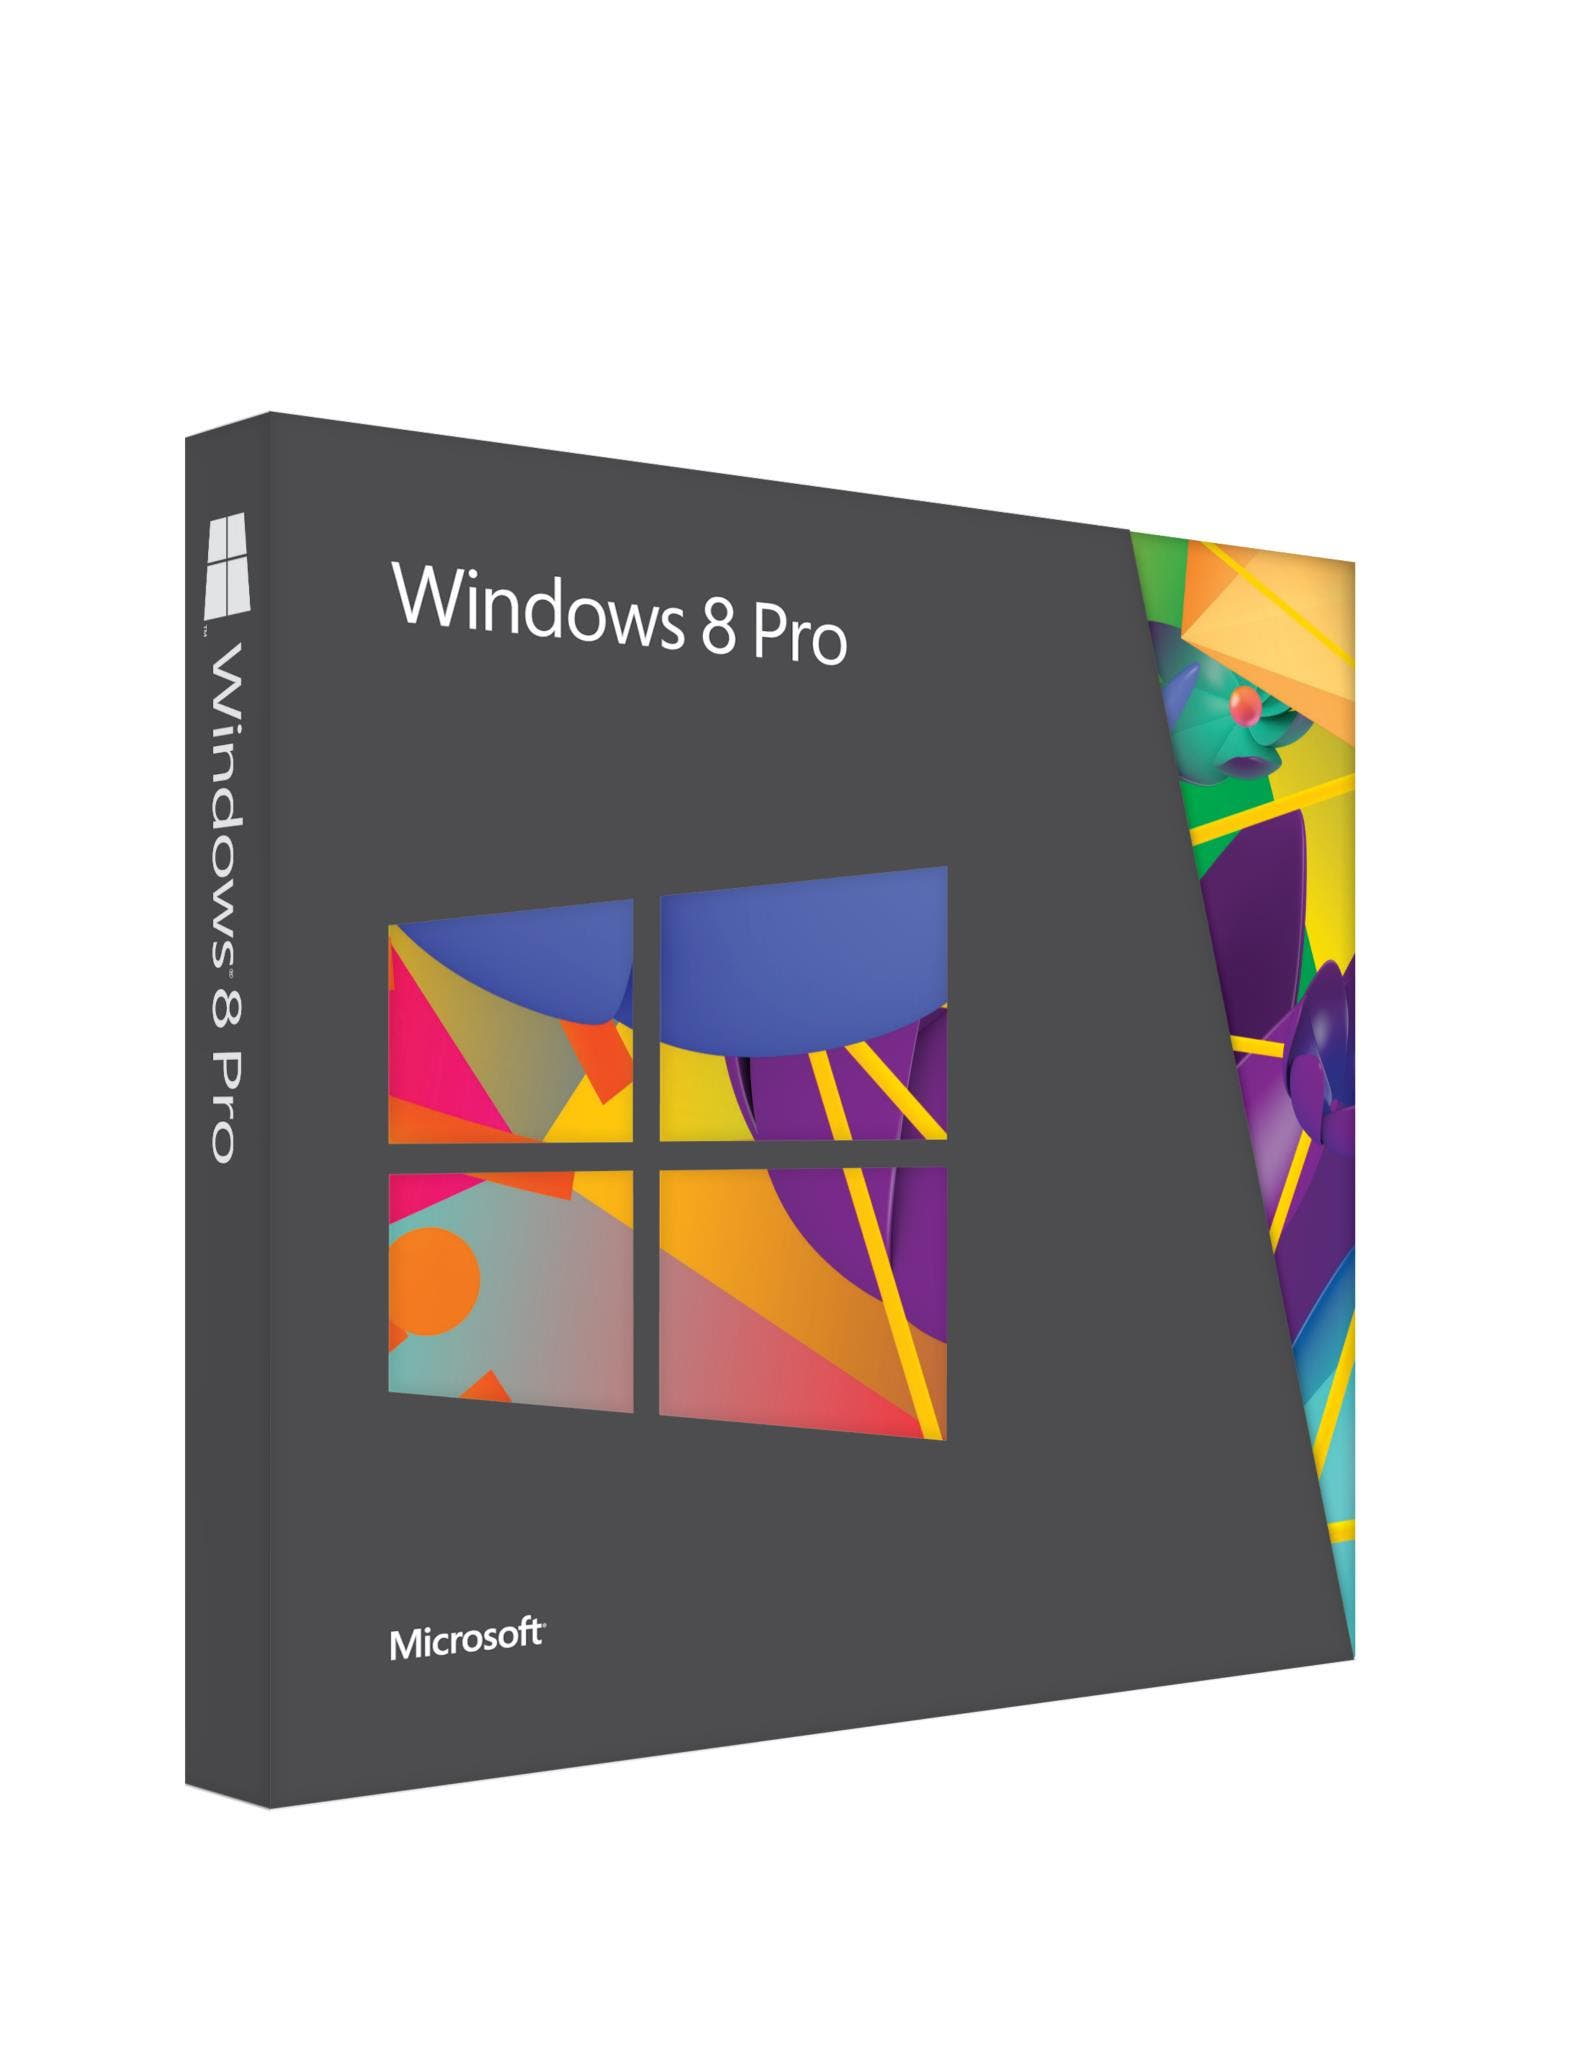 windows-8-pro-package-1